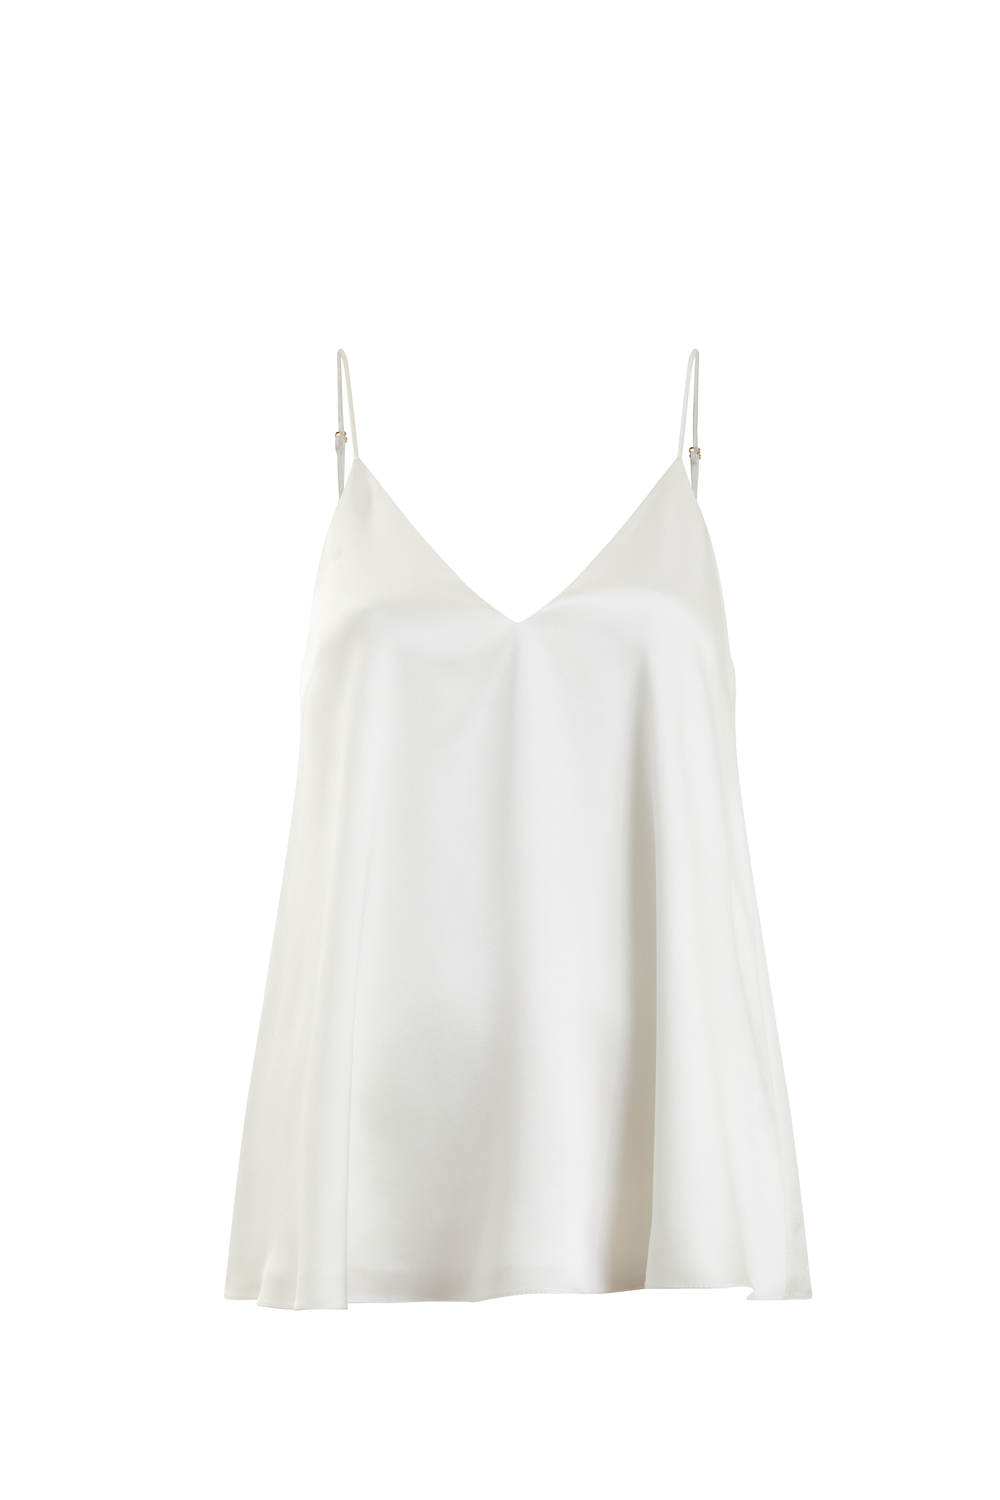 White Lotu double faced organic peace silk camisole Ivory